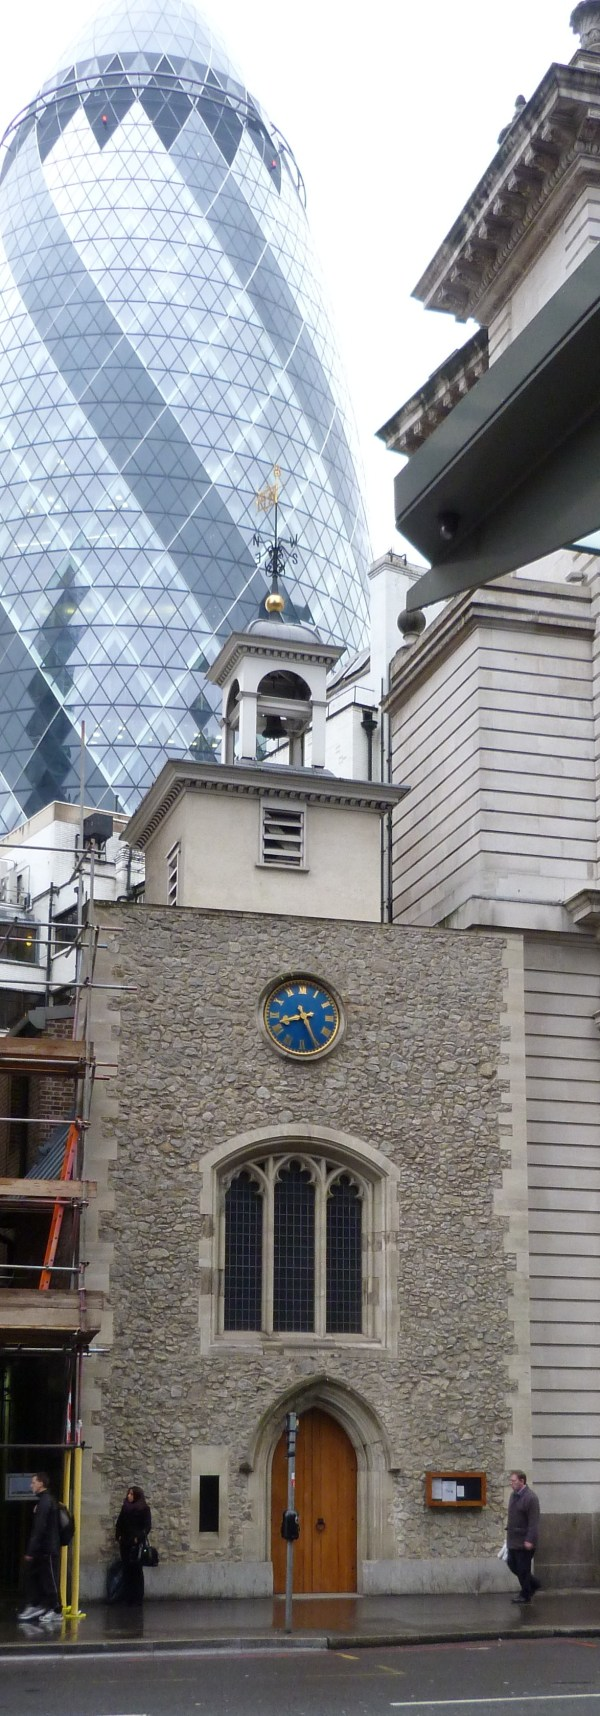 St Ethelburga | The Lost City of London – Before the Great ...